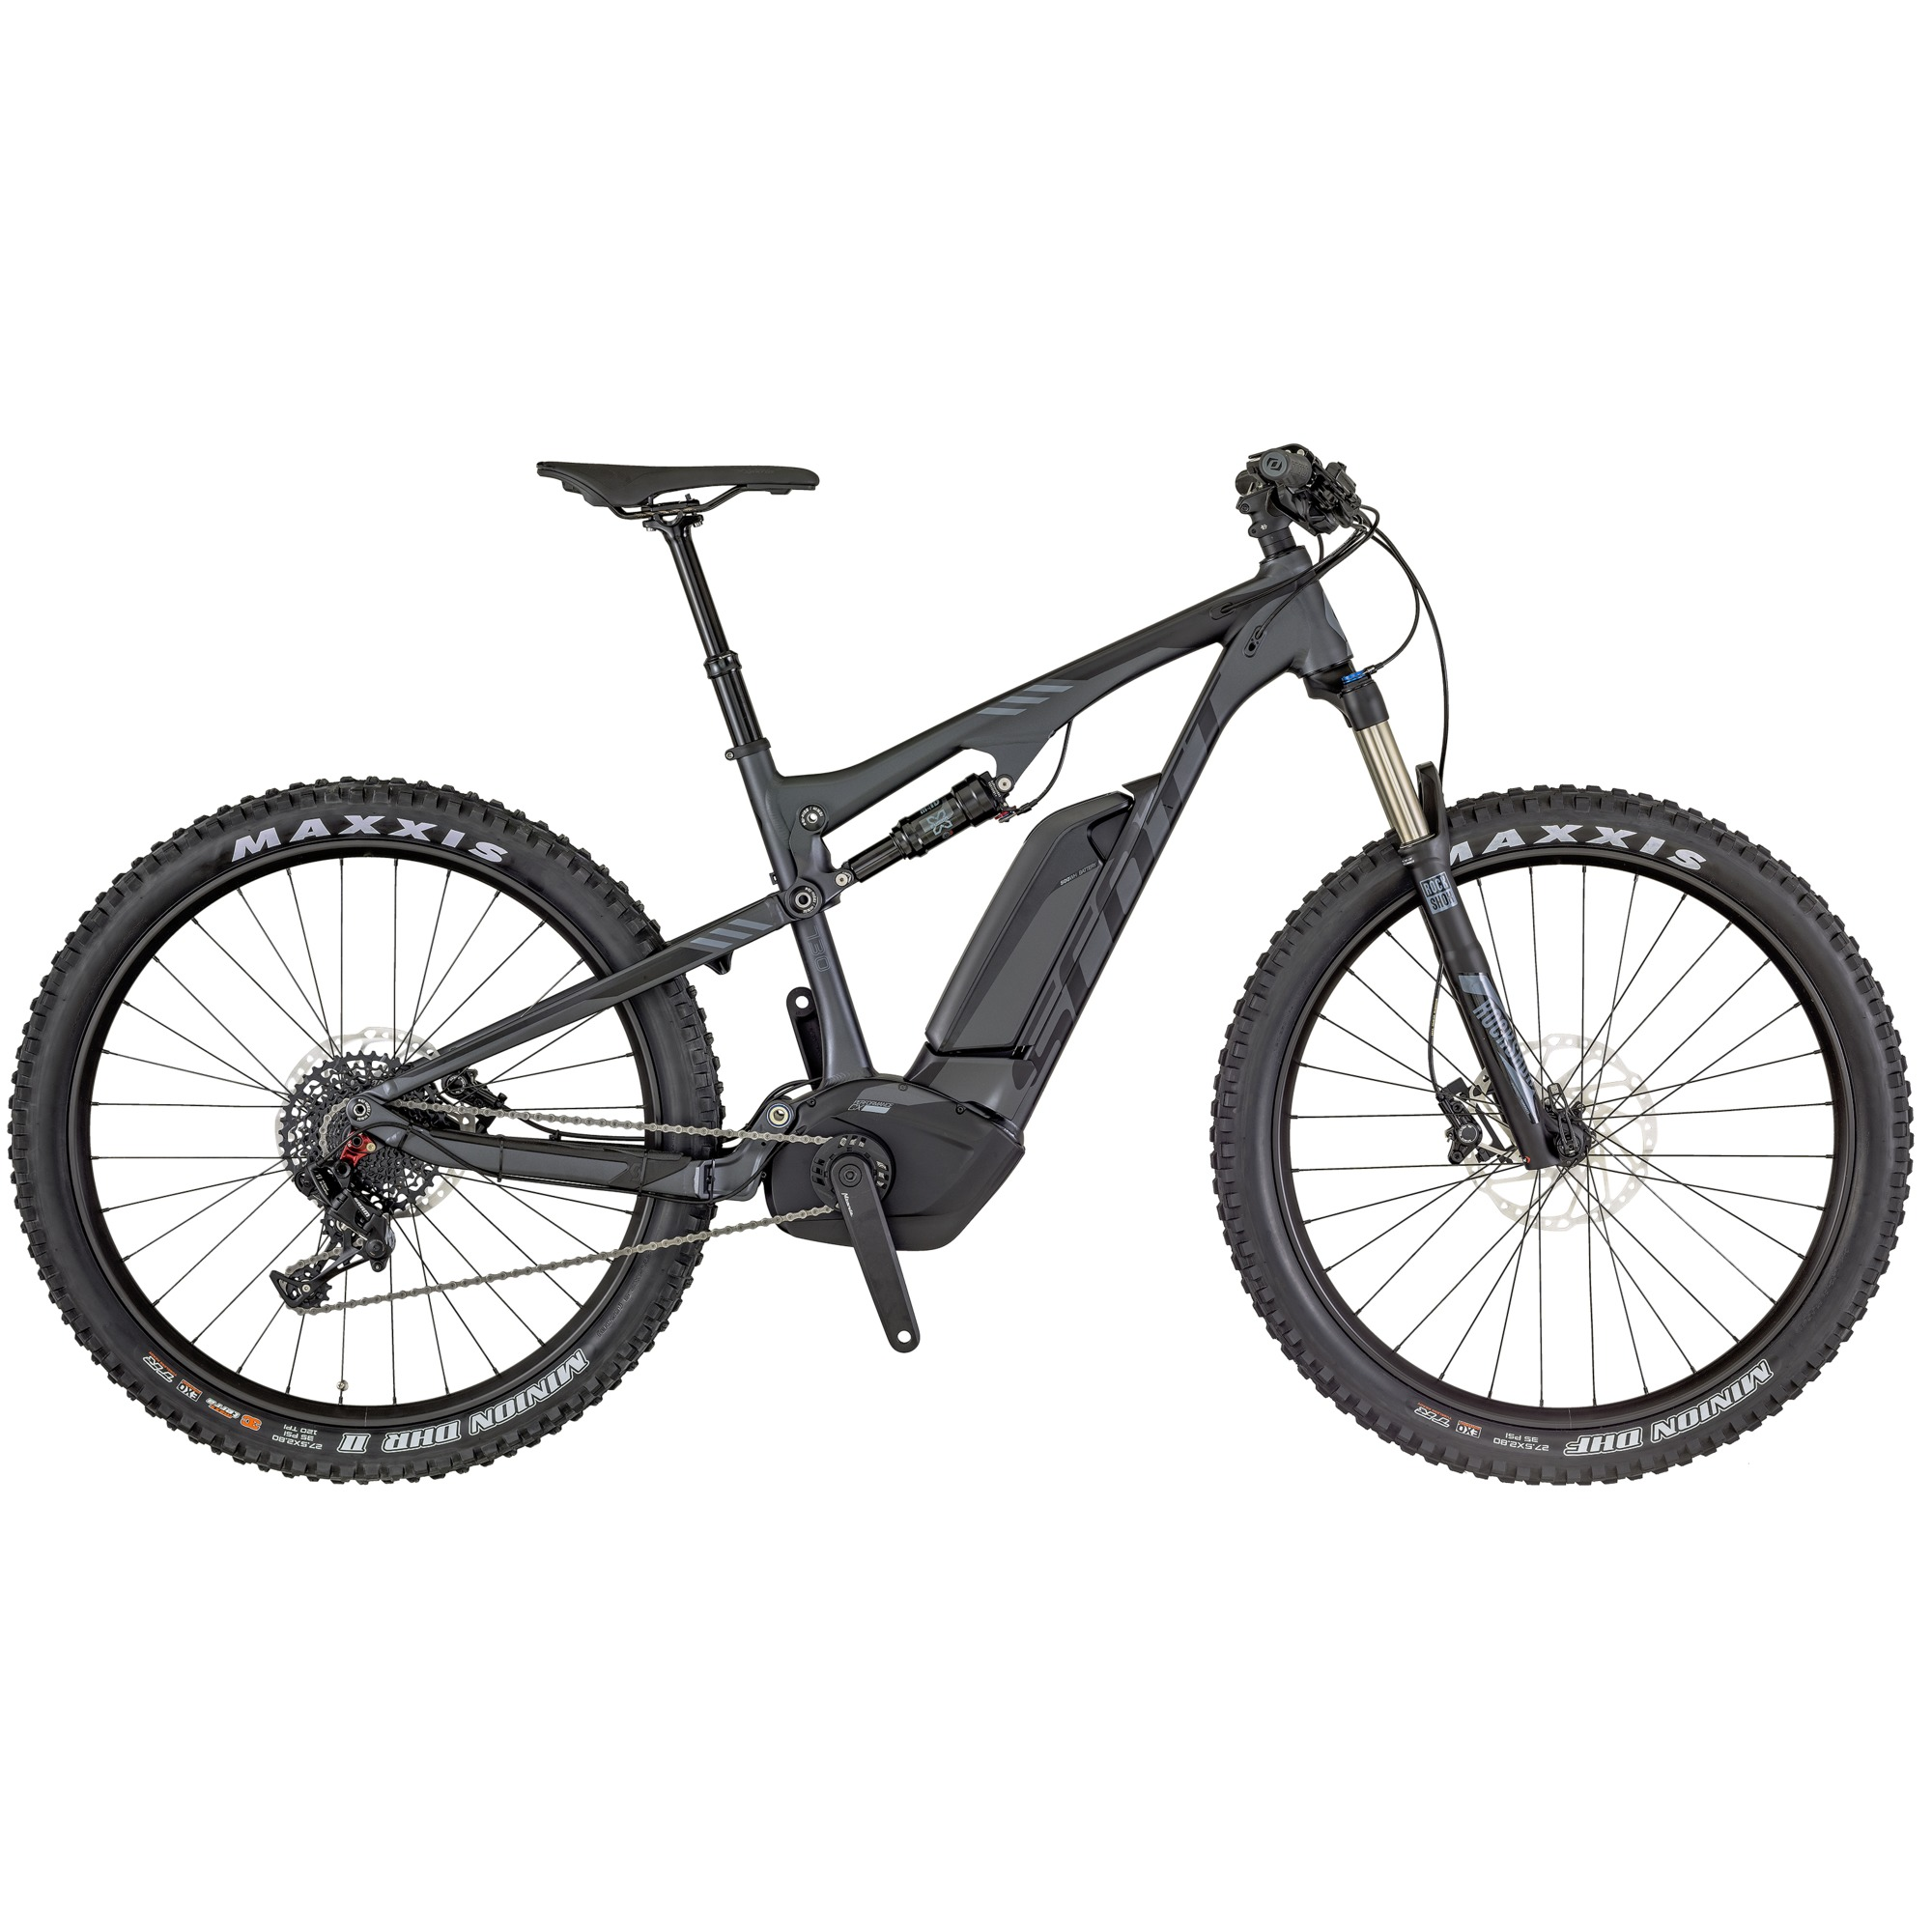 SCOTT E-Genius 730 Bike L - Zweirad Homann